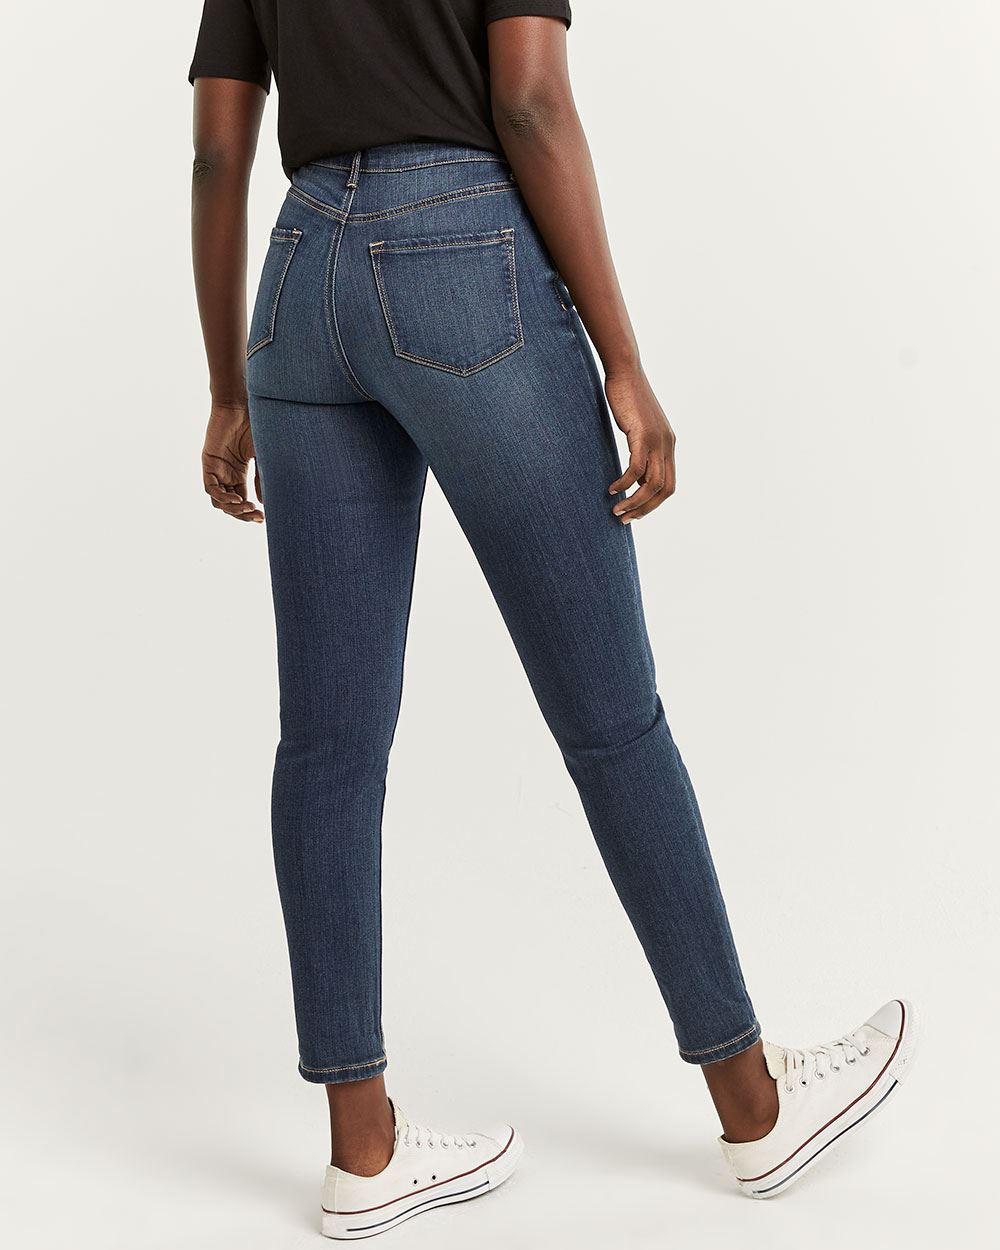 The Petite Signature Soft Skinny Mid-Wash Jeans